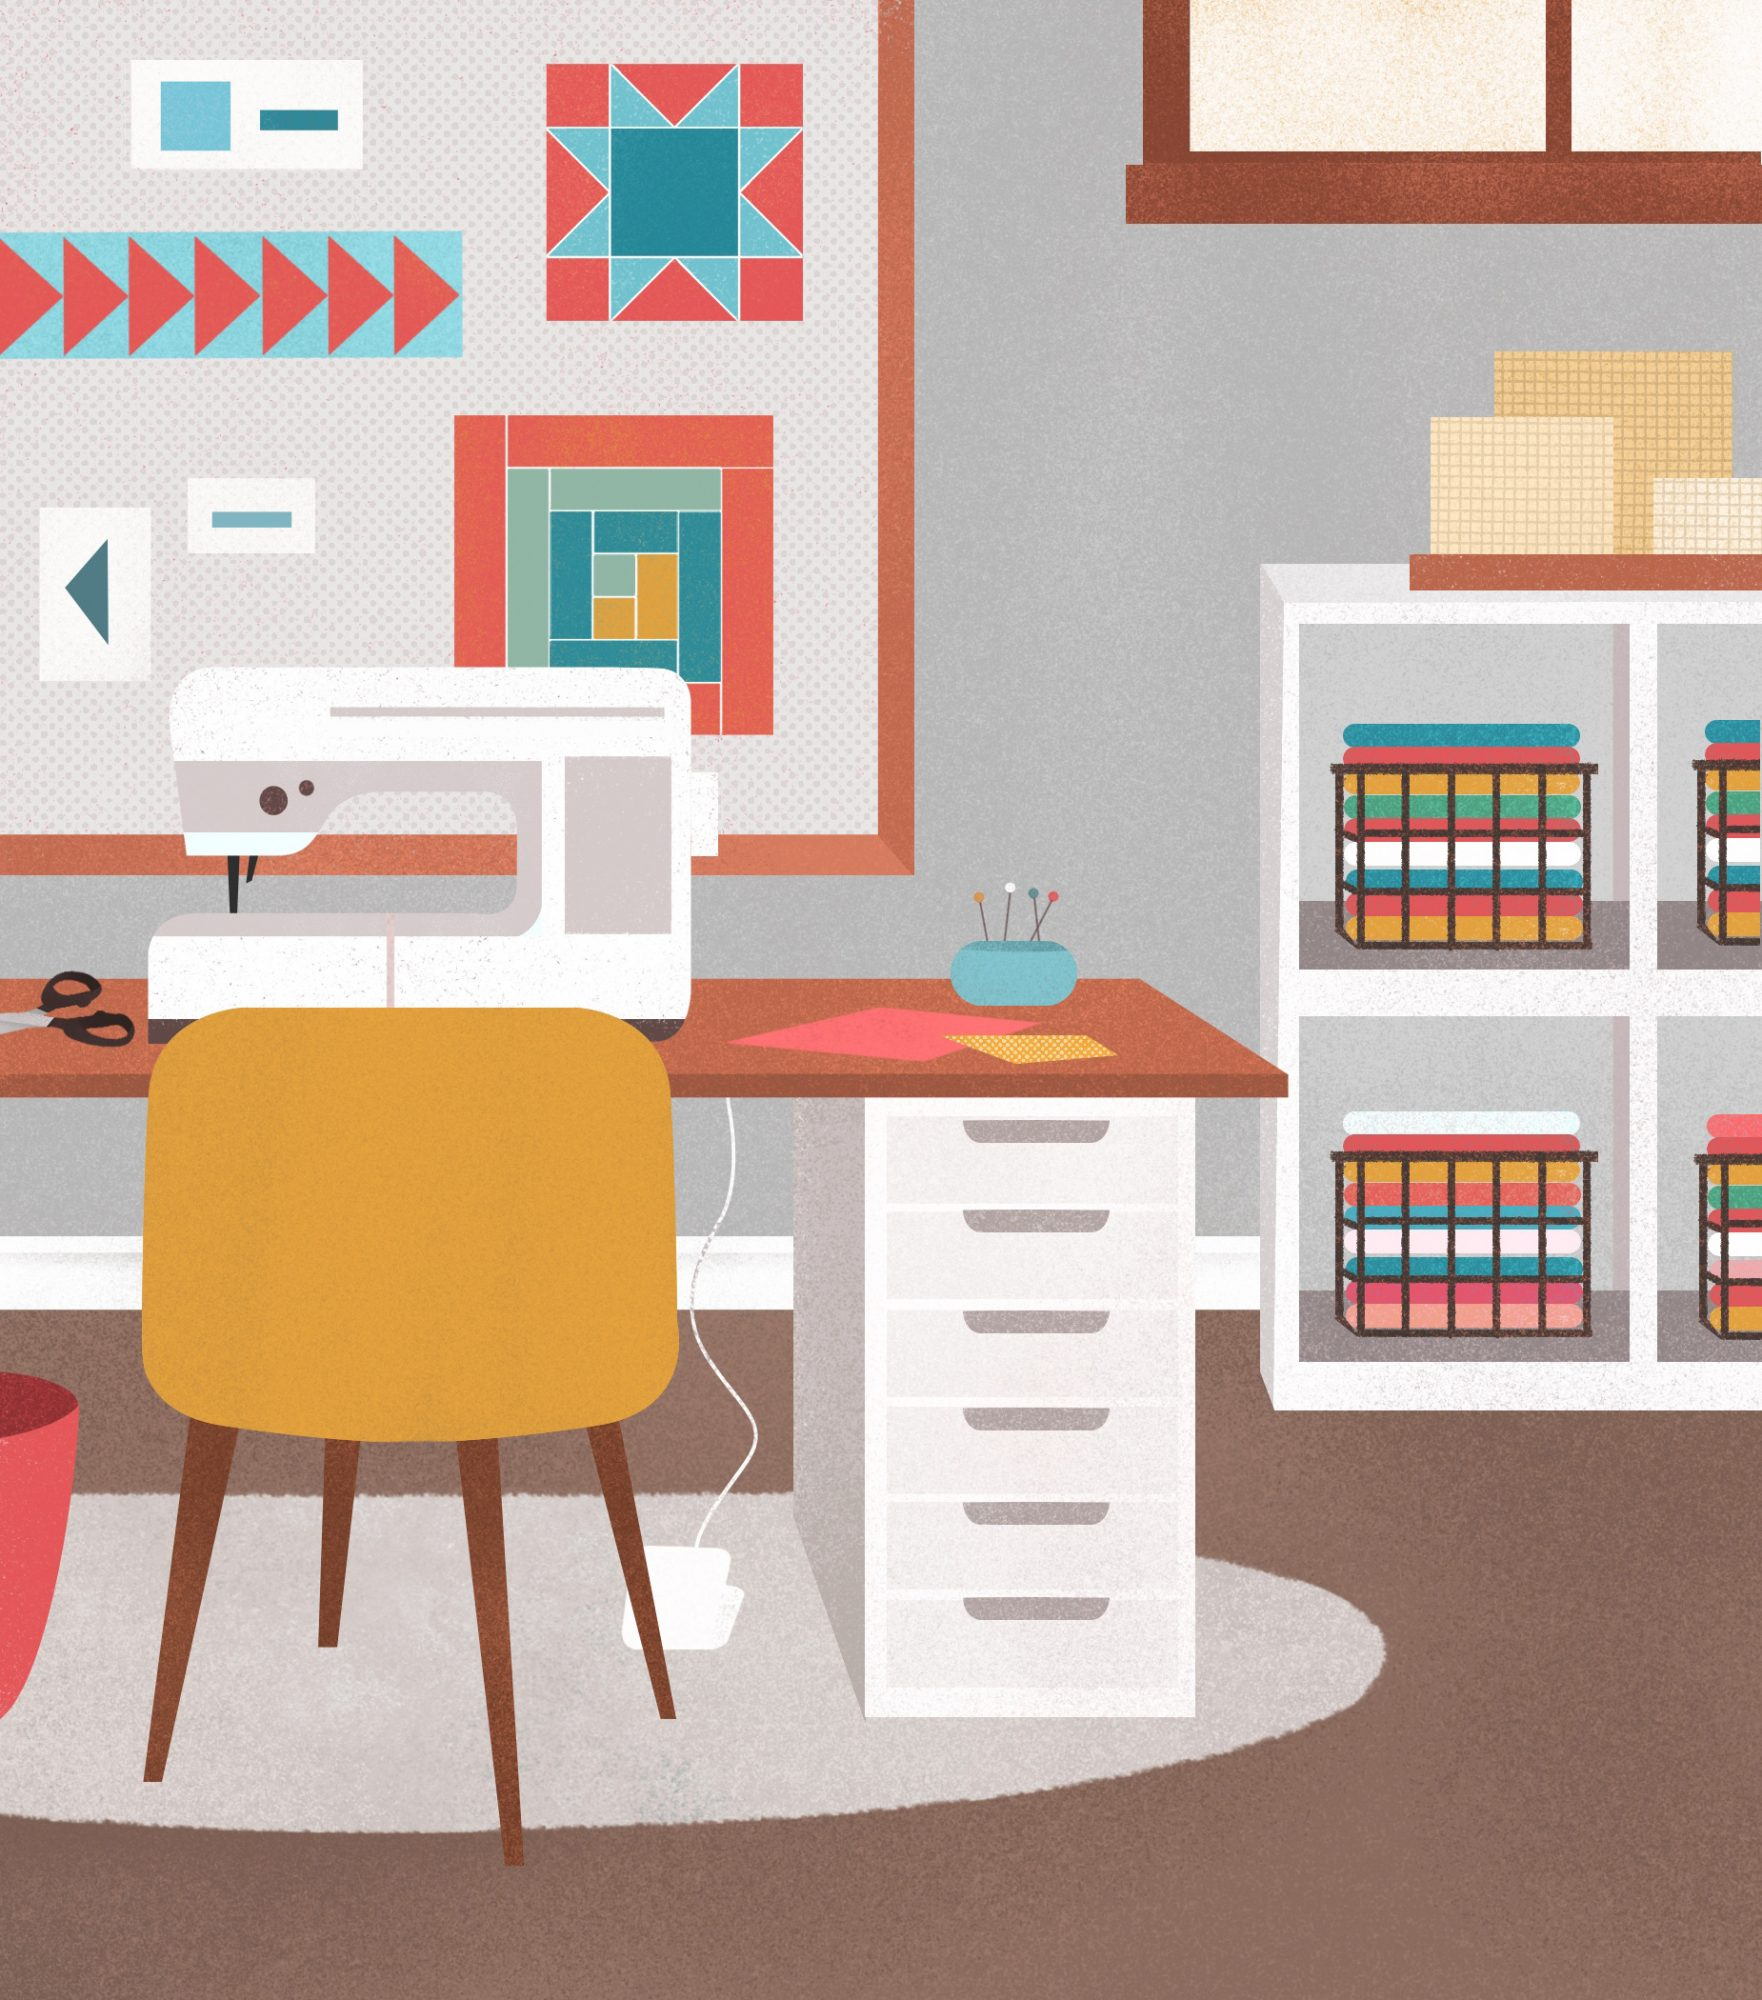 sewing room illustration